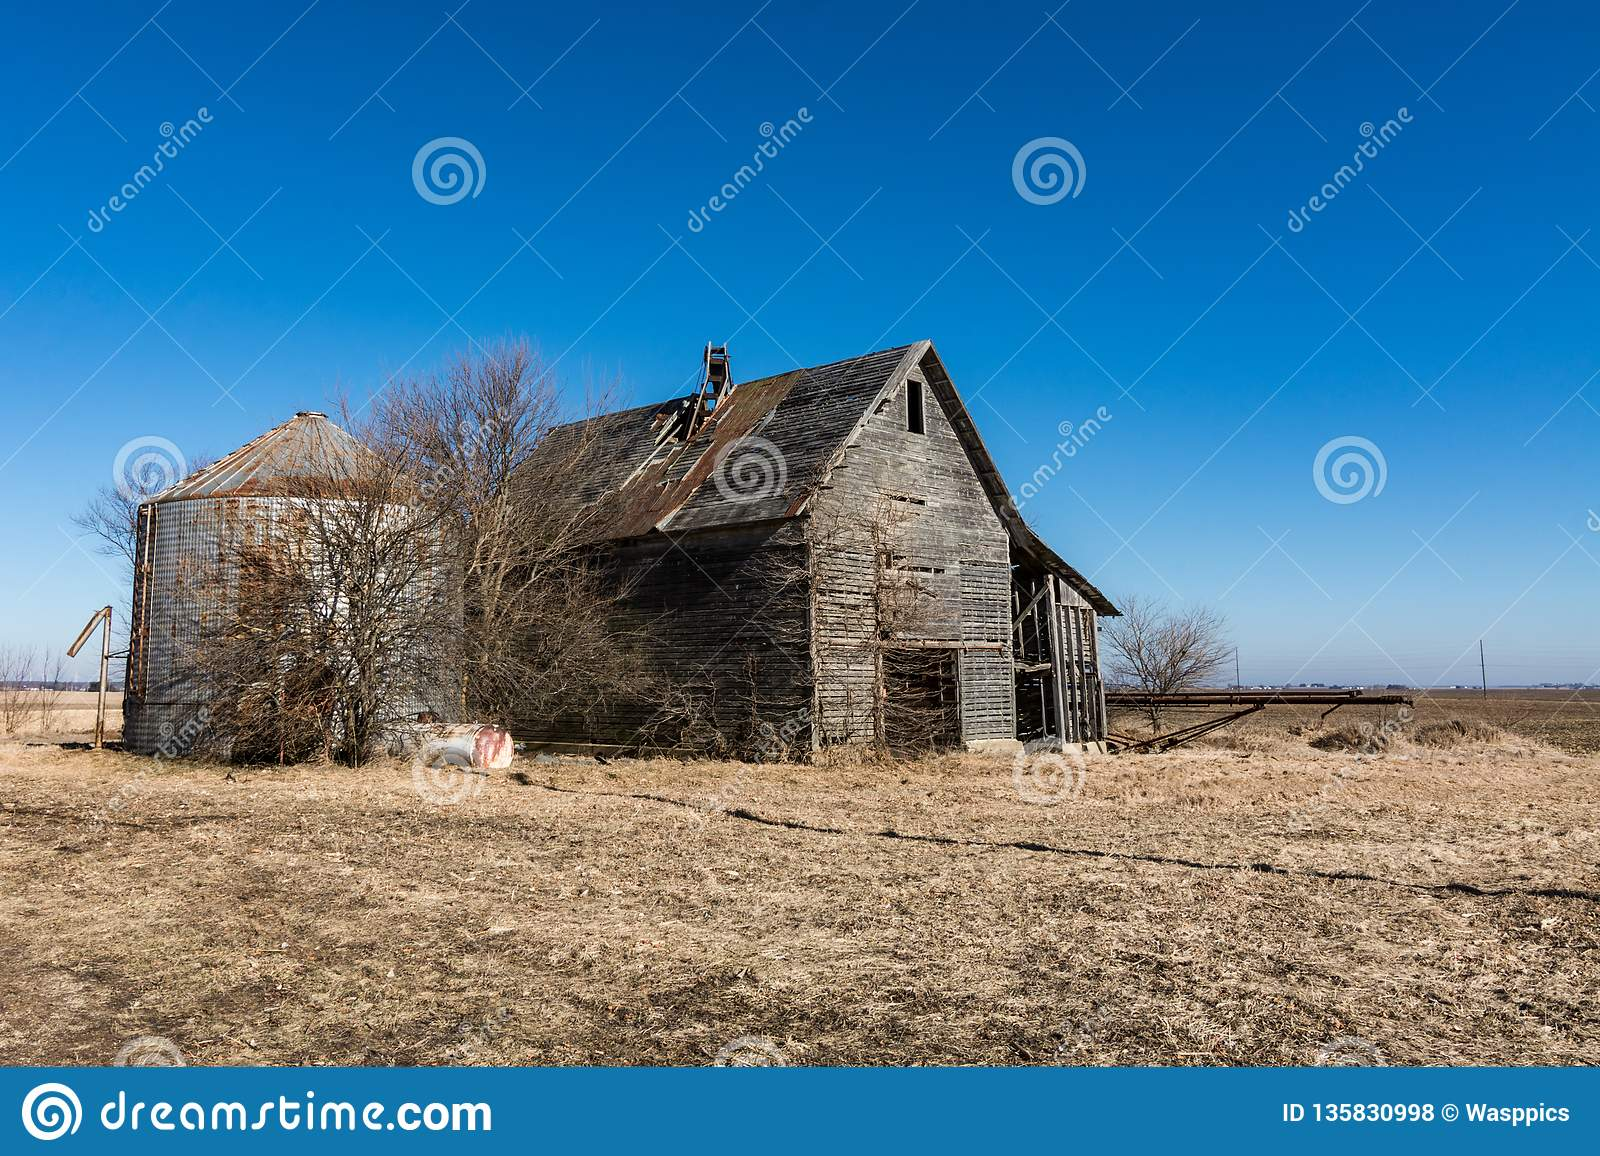 Abandoned And Dilapidated Farm Buildings In Rural Illinois